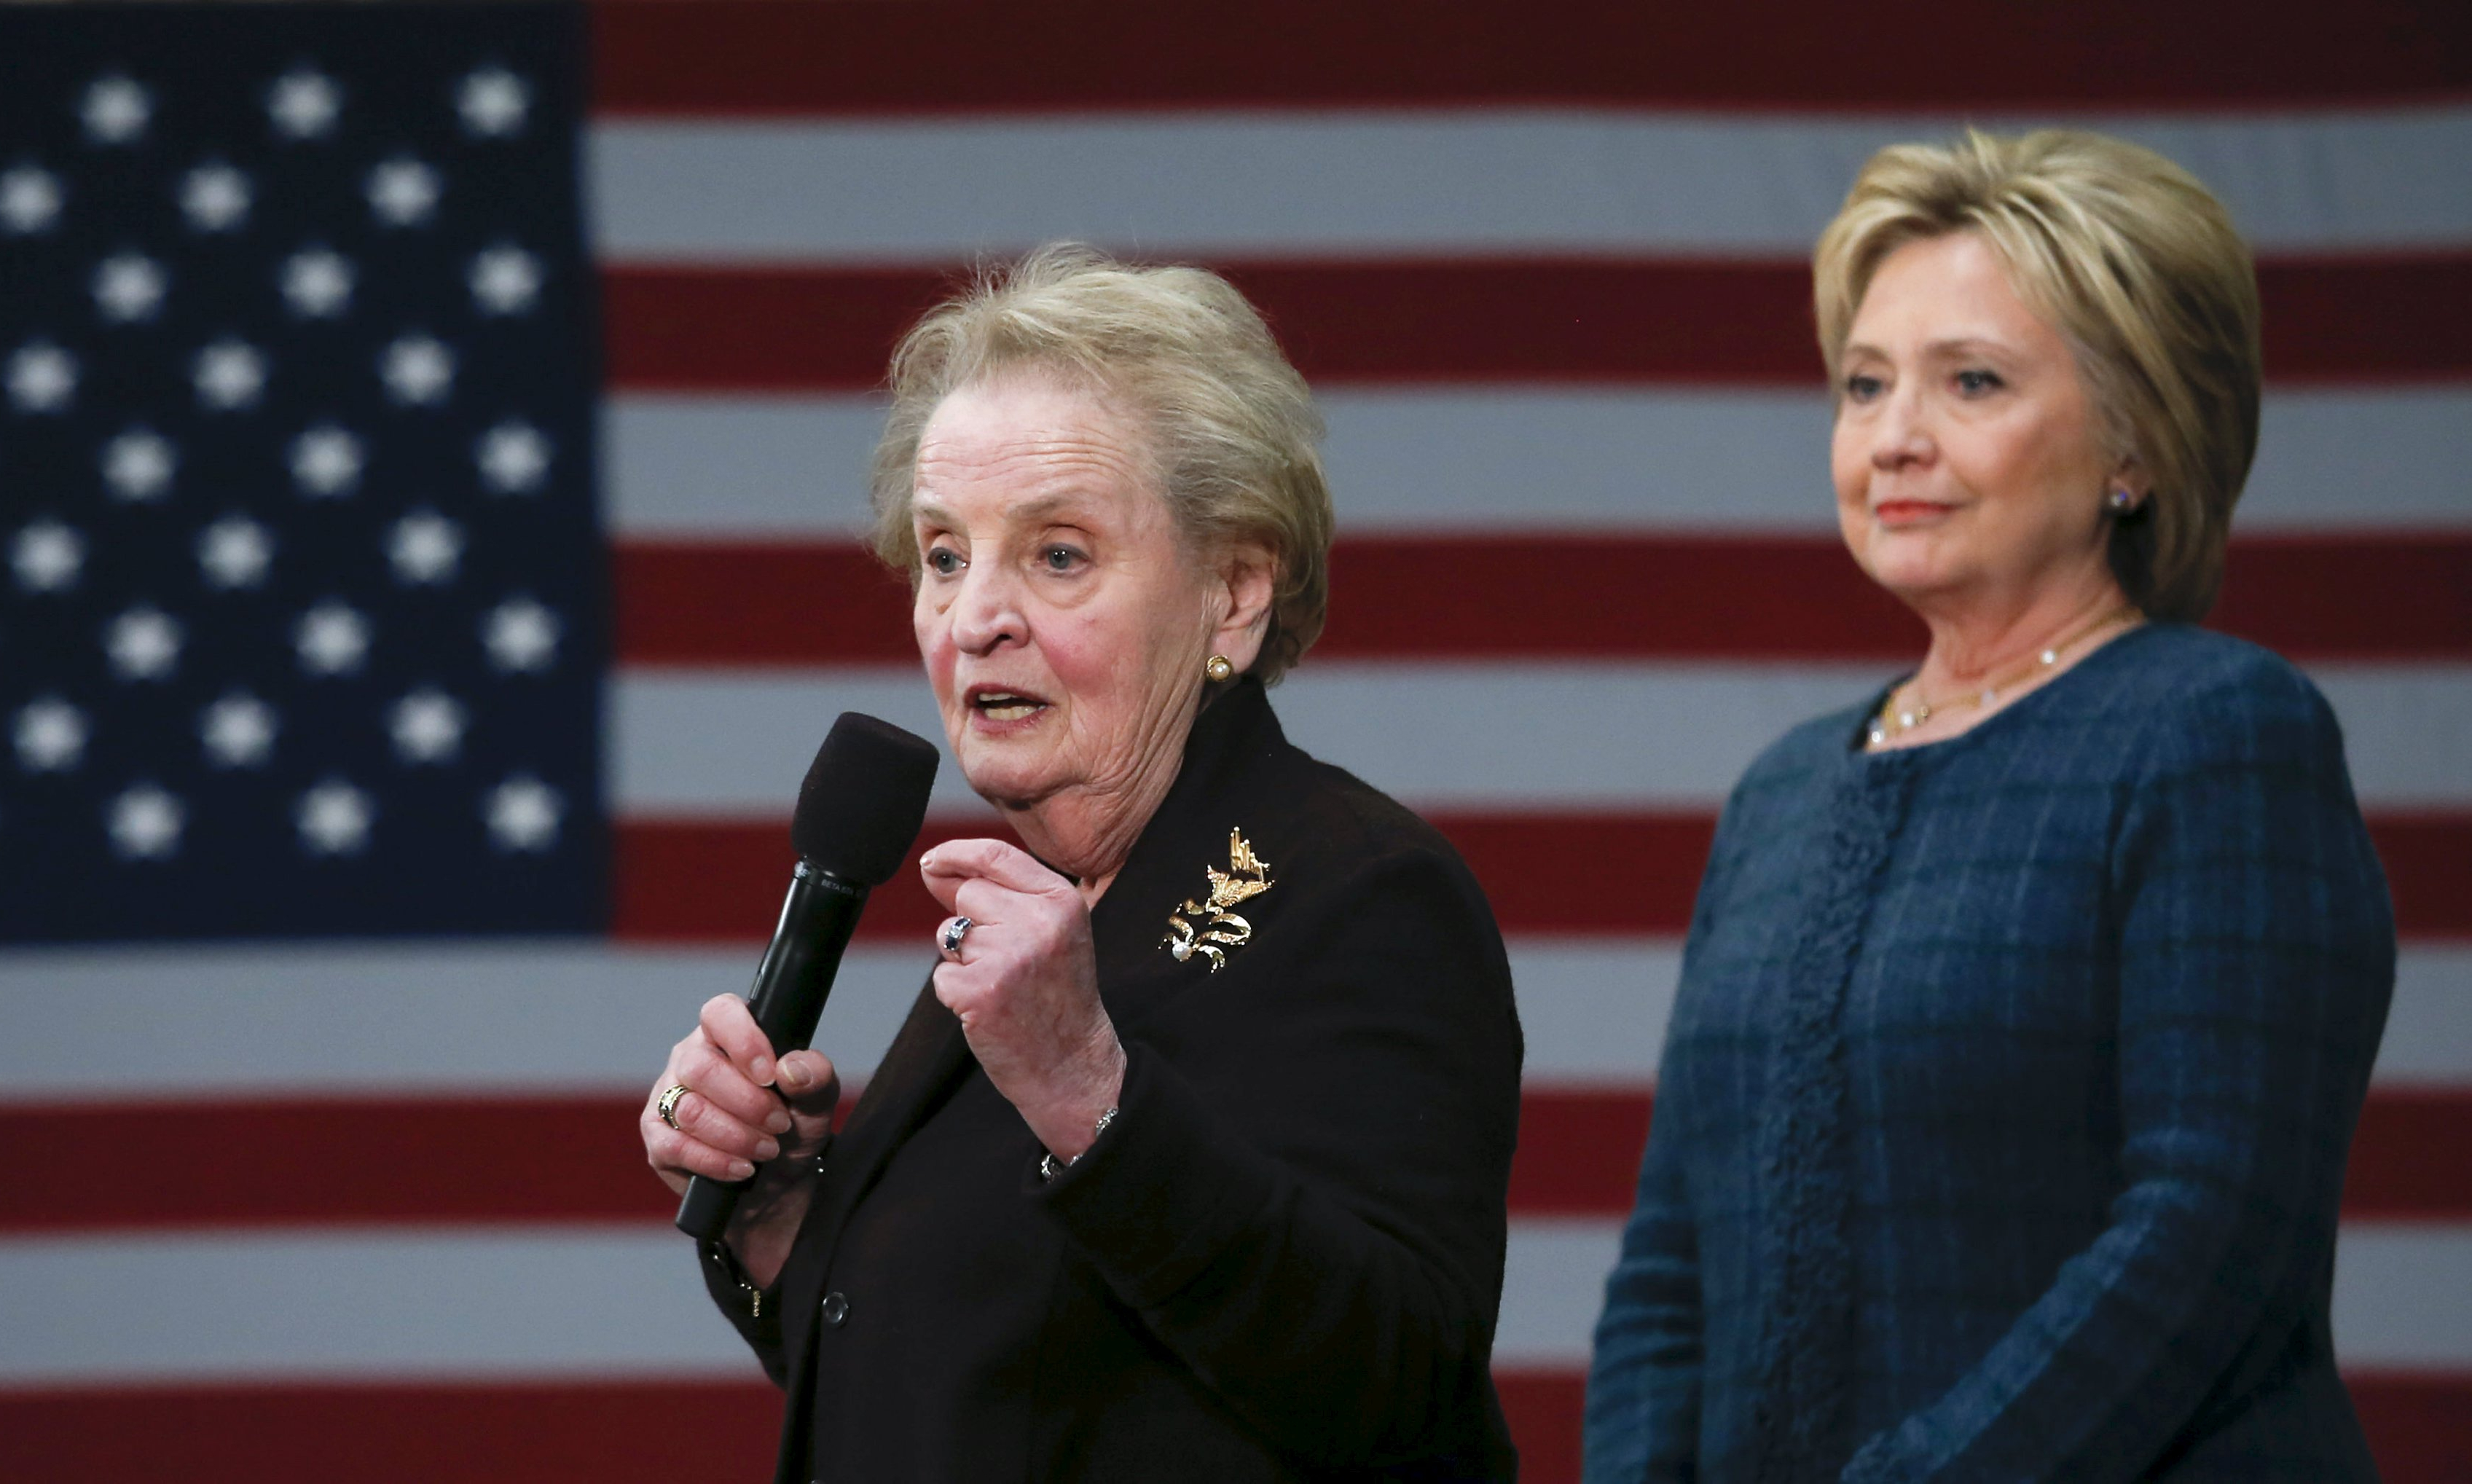 Clinton defends Albright and Steinem apologises as sexism claims dominate Democratic race